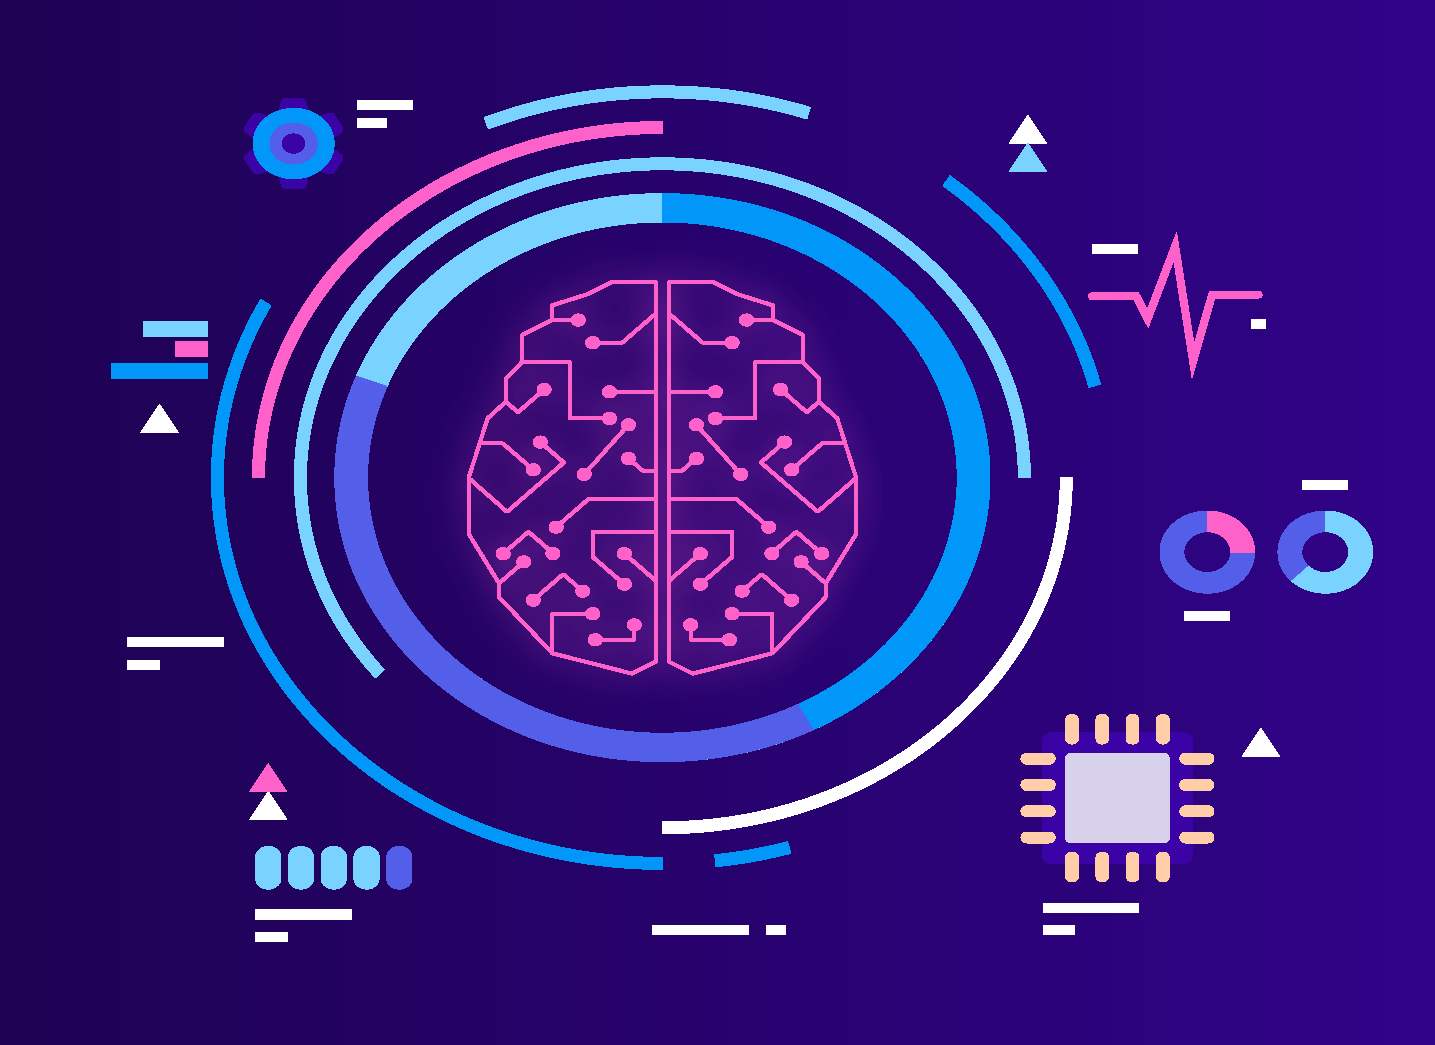 Brain with graphs besides it